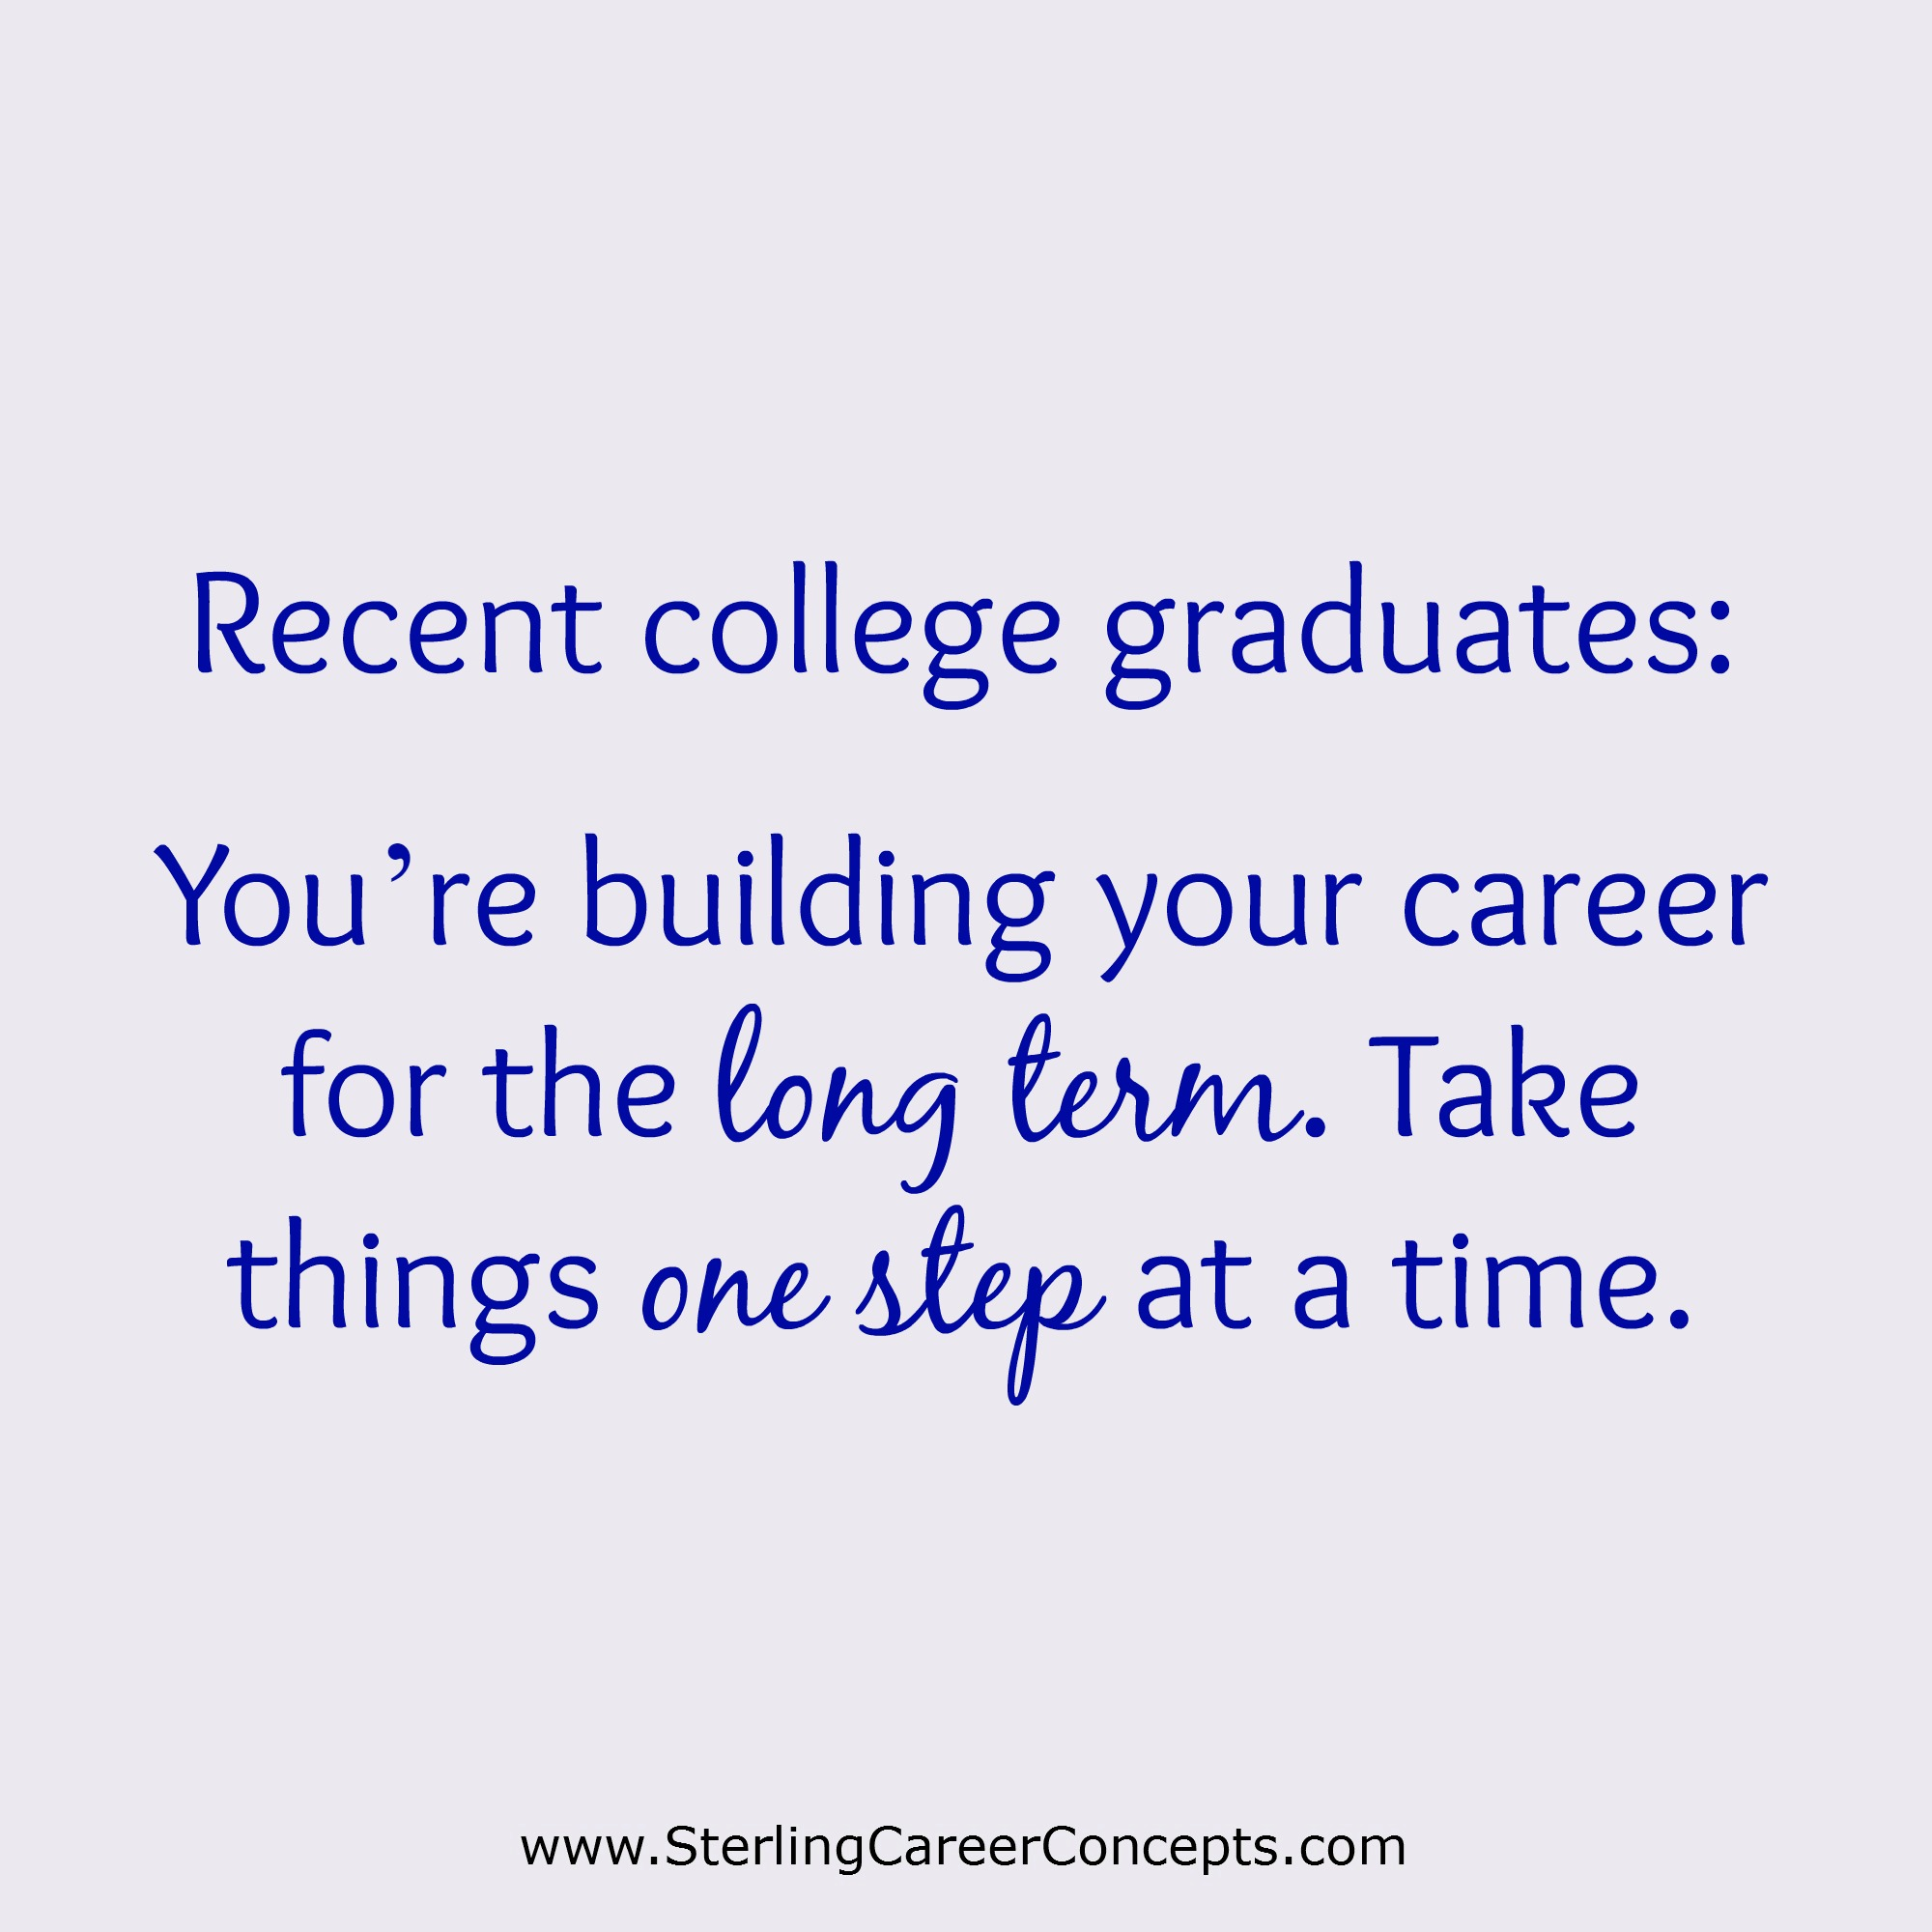 Read More Of My Job Search Advice To New College Graduates Here.